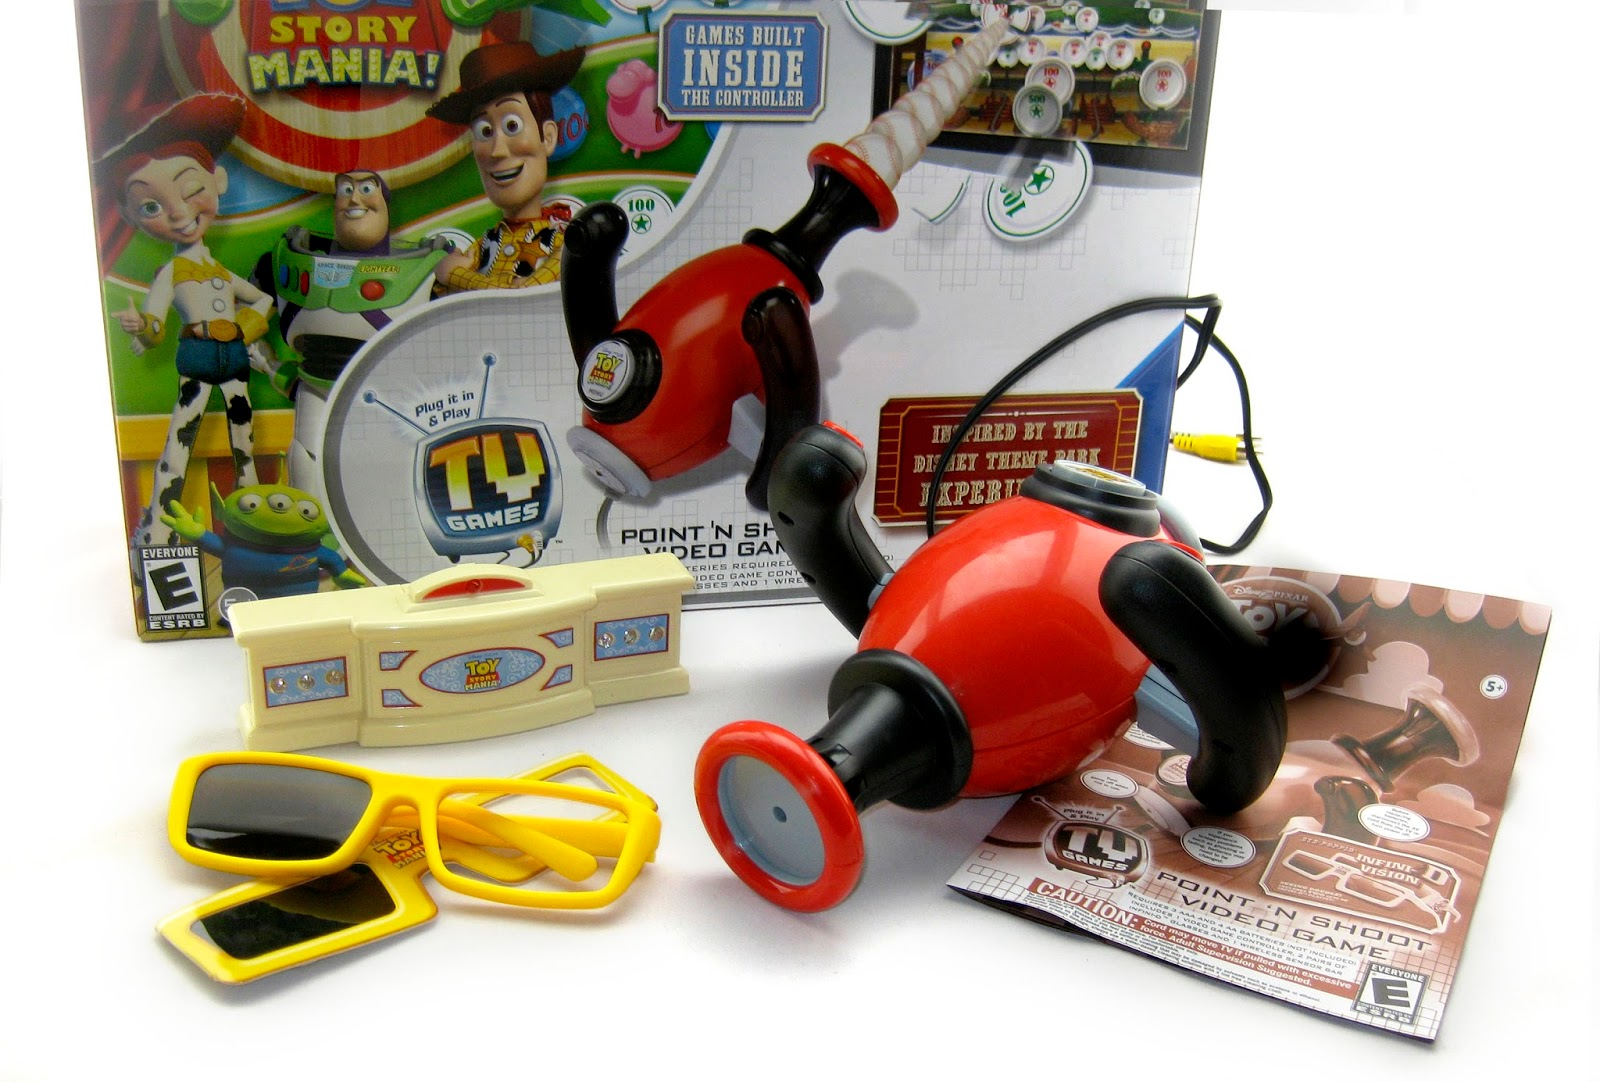 Toy Story Games To Play : Dan the pixar fan toy story mania plug and play point n